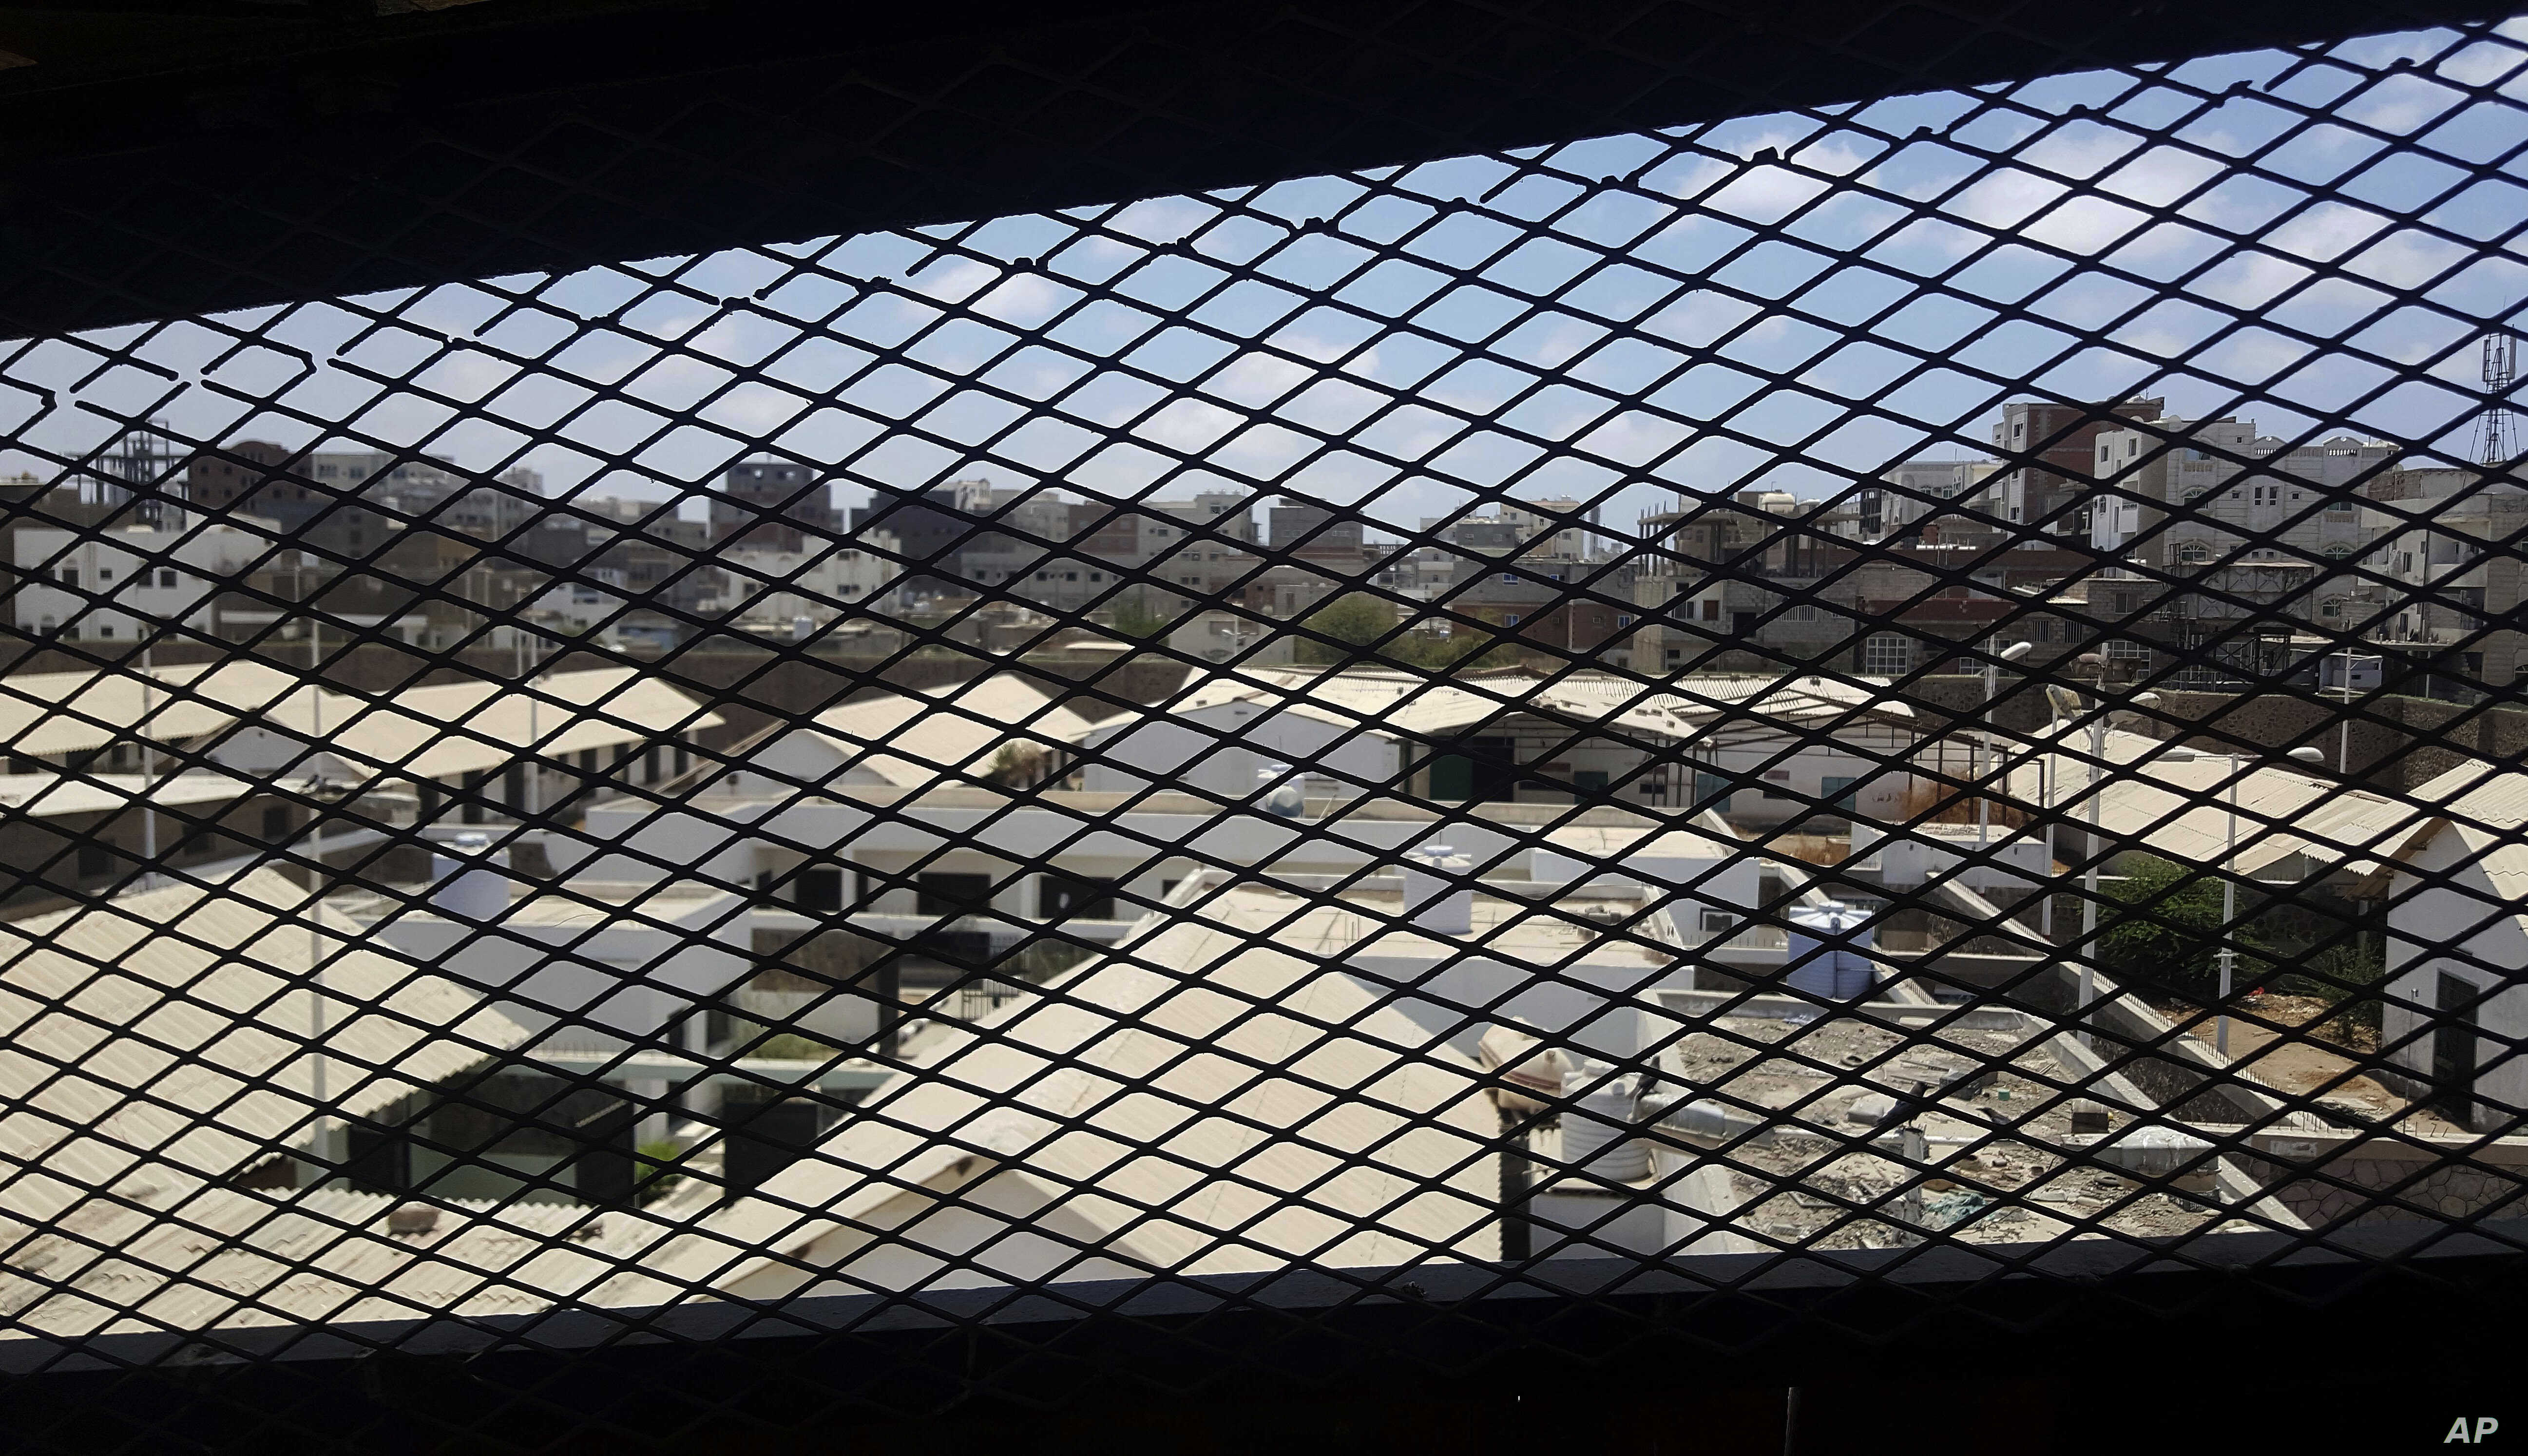 A view through a mesh window looks out over part of Aden Central Prison, known as Mansoura, in this May 9, 2017, photo in Aden, Yemen. A section of the prison is run by Yemeni allies of the United Arab Emirates, part of a network of secret prisons in